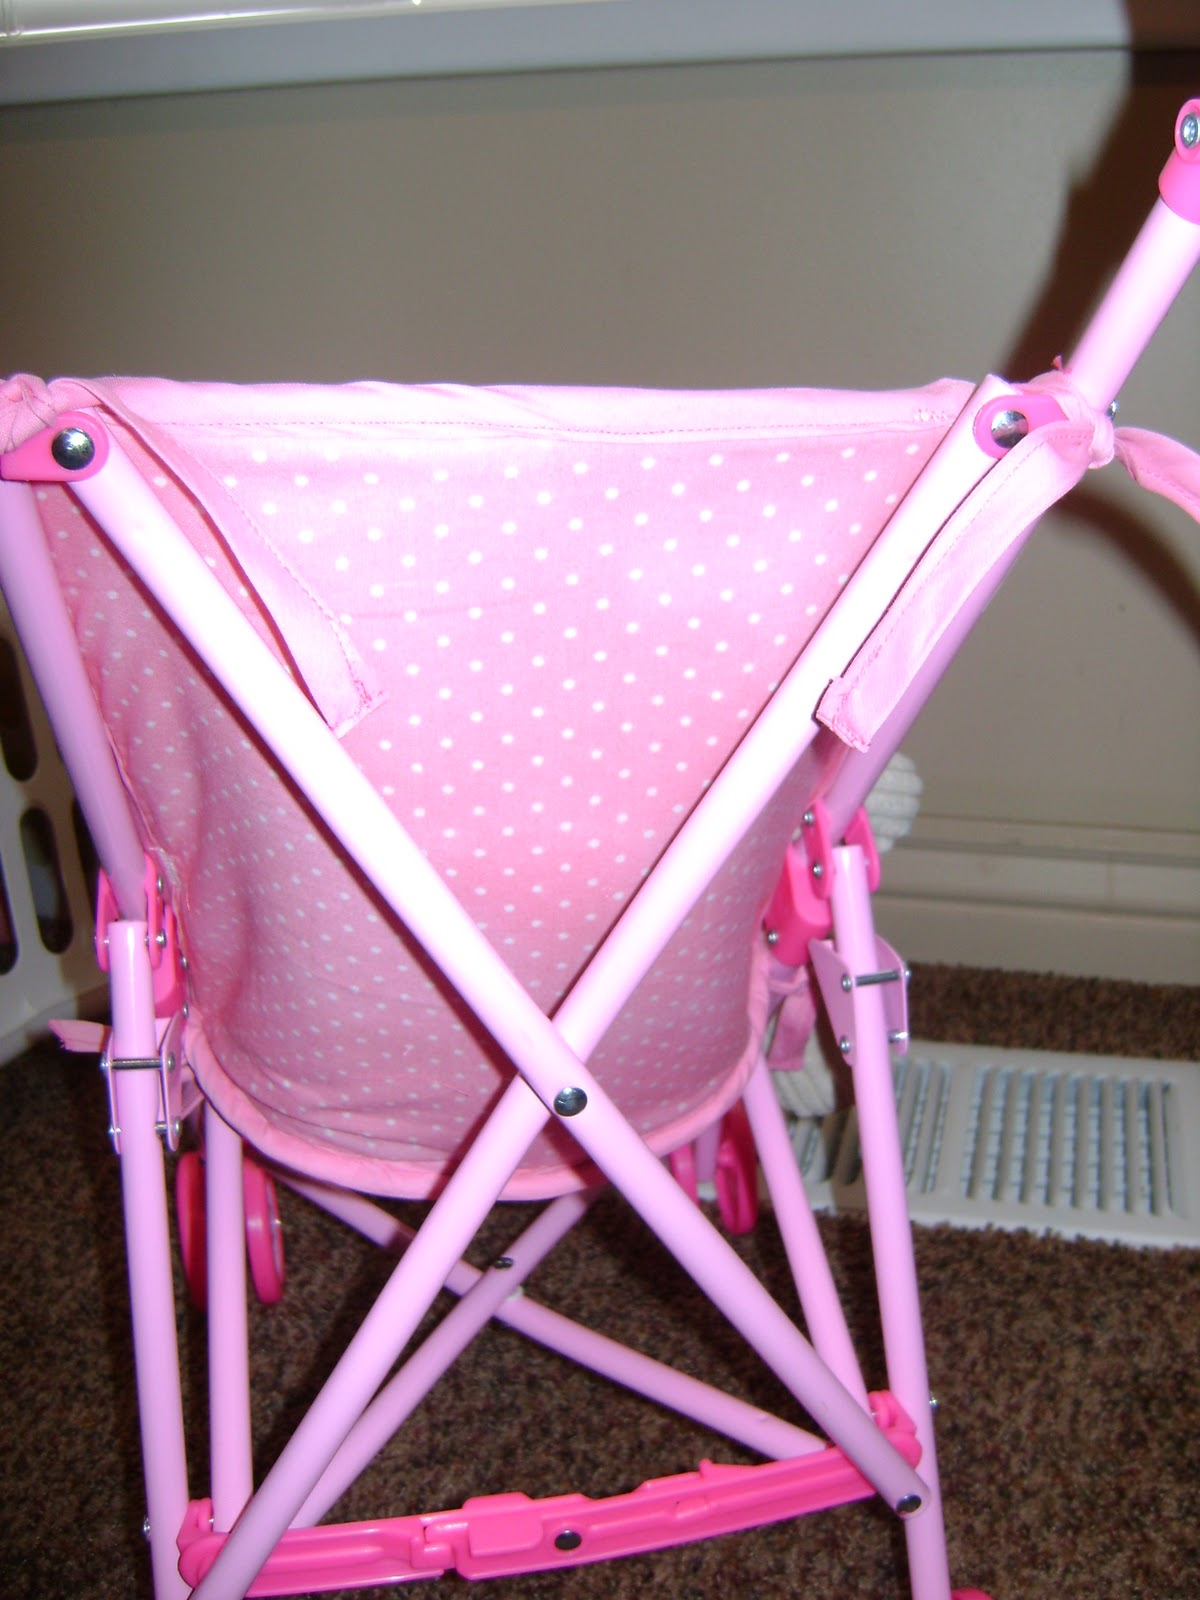 Sewin Sanity: making a replacement seat for a doll stroller